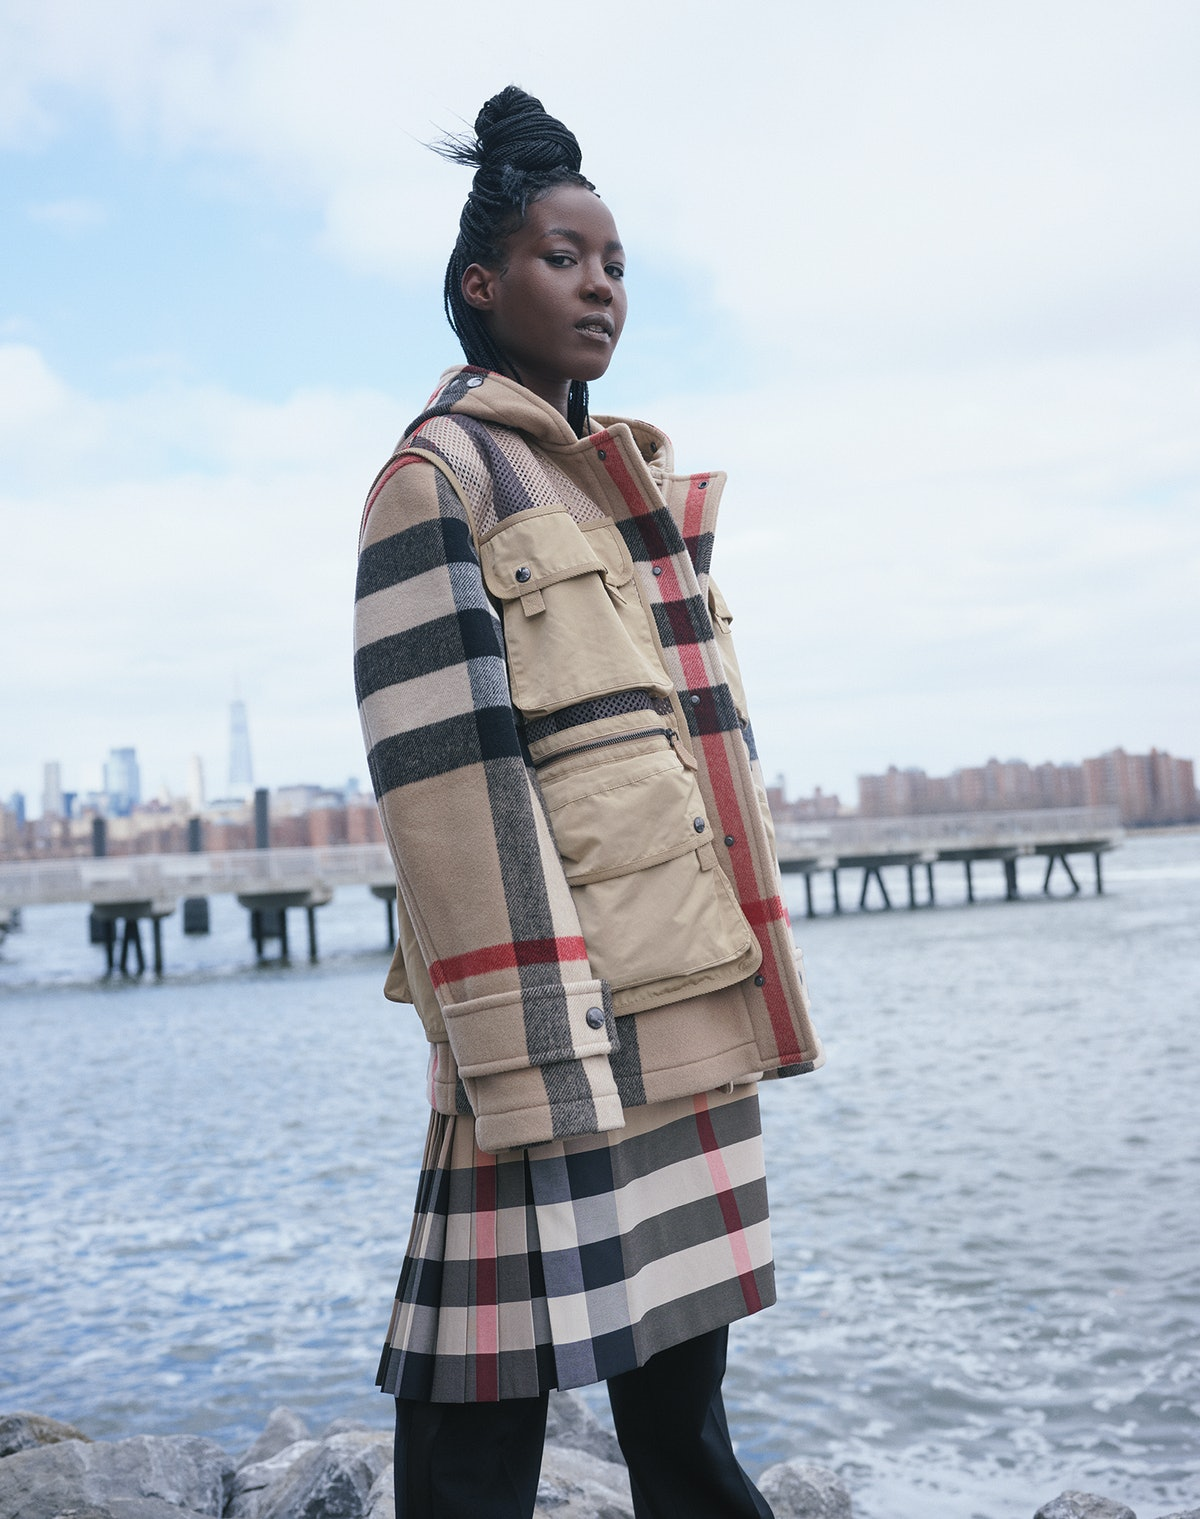 the musician Hawa wearing a Burberry outfit